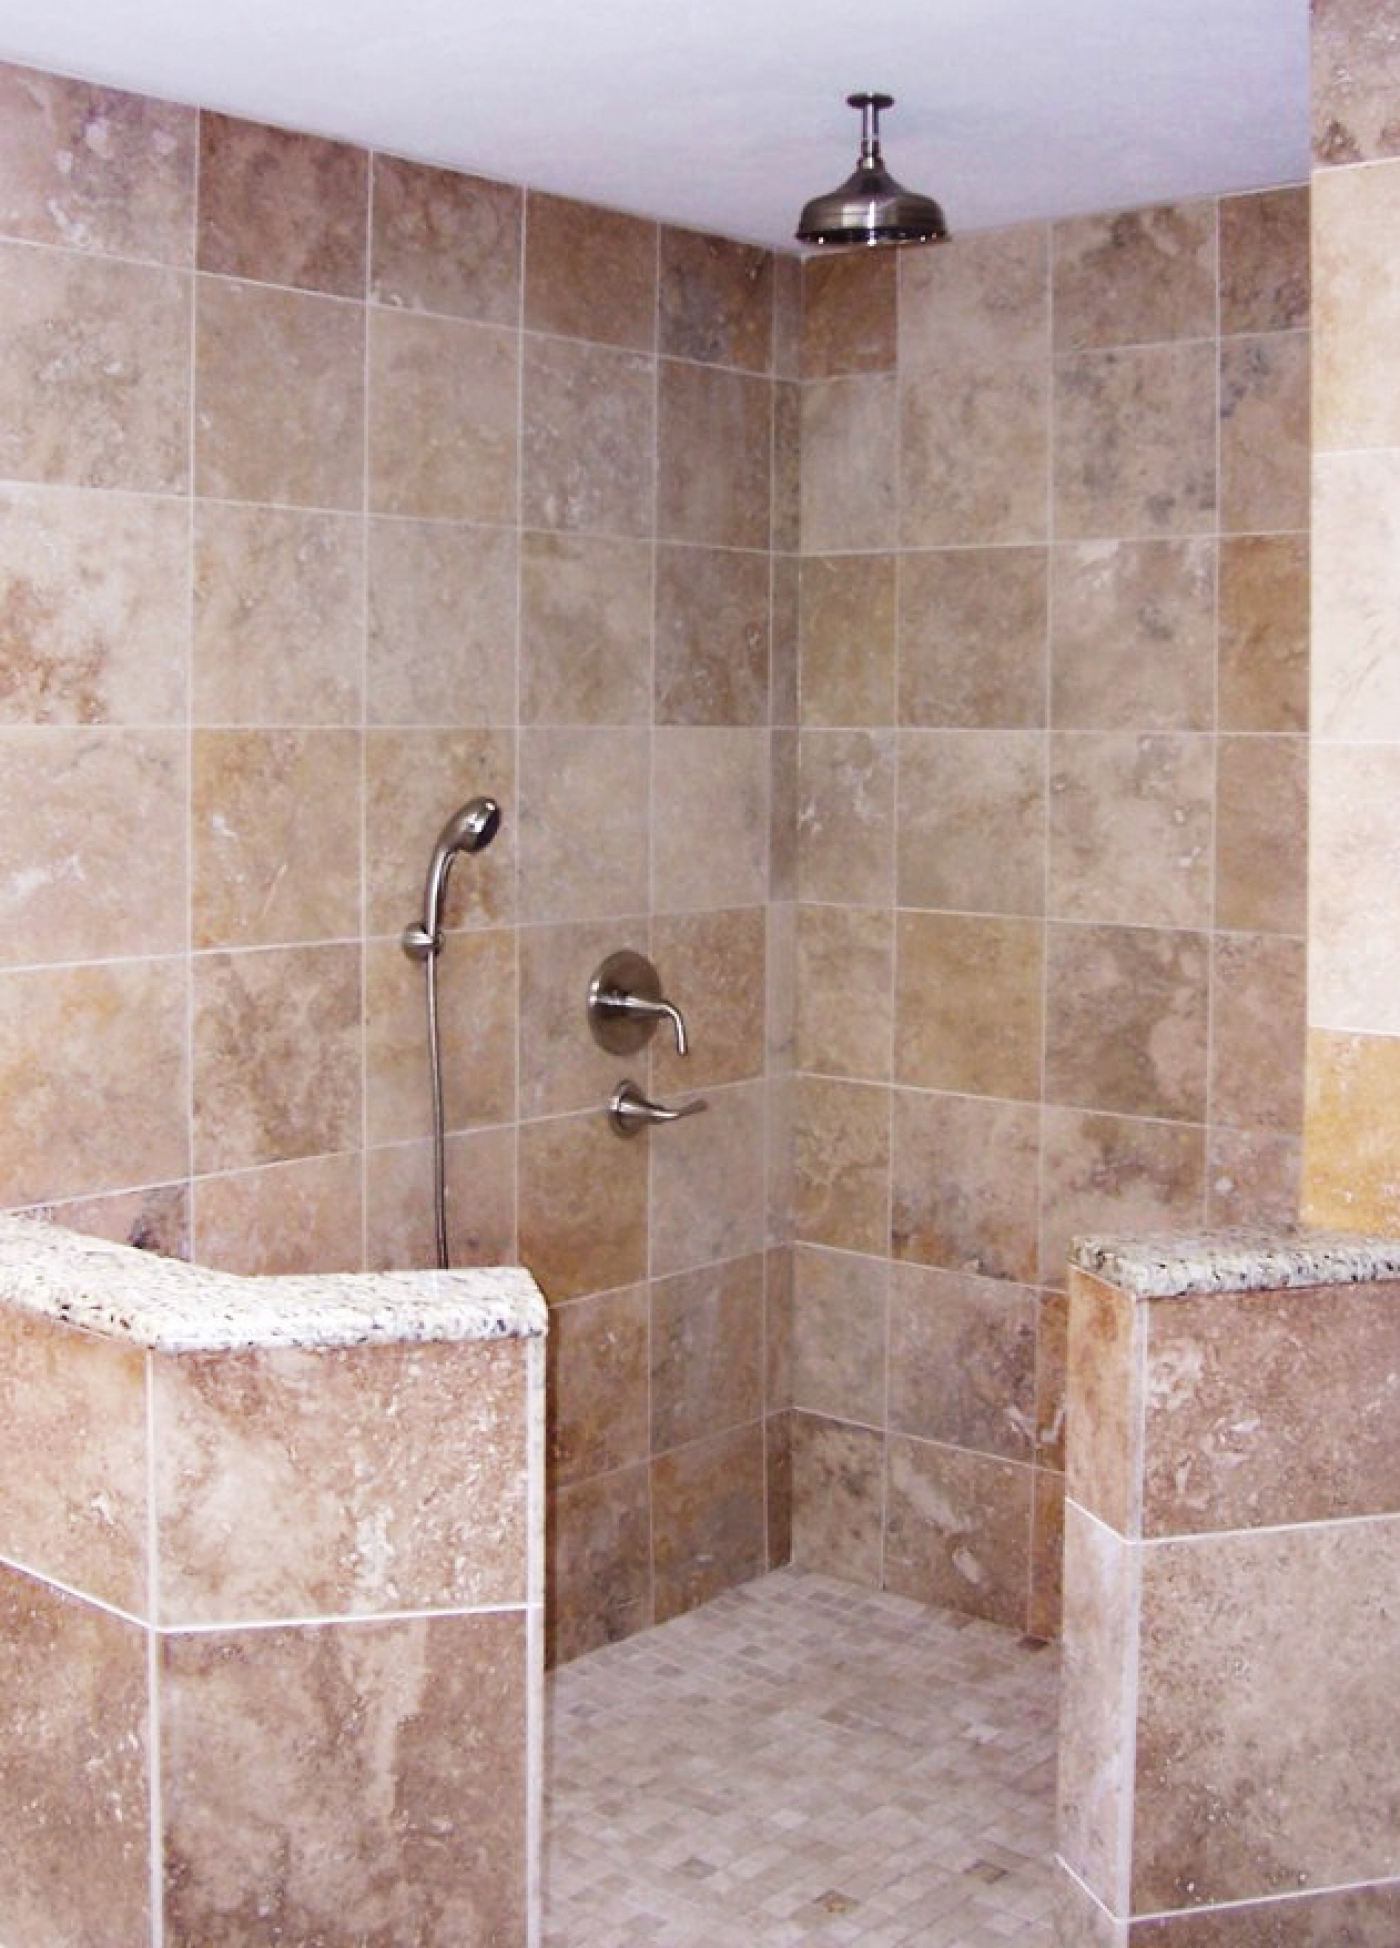 Walk in shower designs for small bathrooms - Bathroom Ideas Small Bathroom With Shower Designs With Walk In Shower No Door And Brown Tile Bathroom Ideas And Traditional Shower Sets Small Bathroom